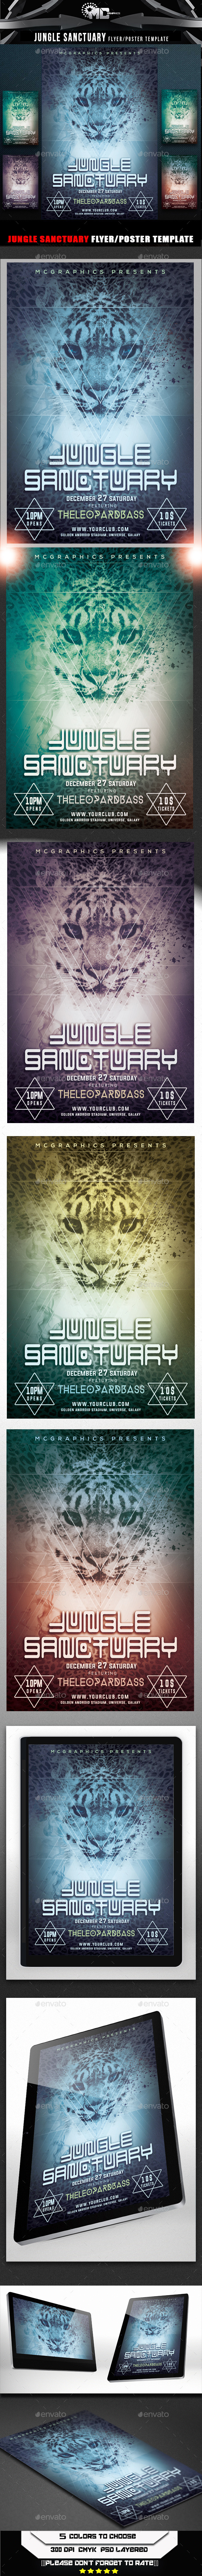 GraphicRiver Jungle Sanctuary Flyer Template 9253713